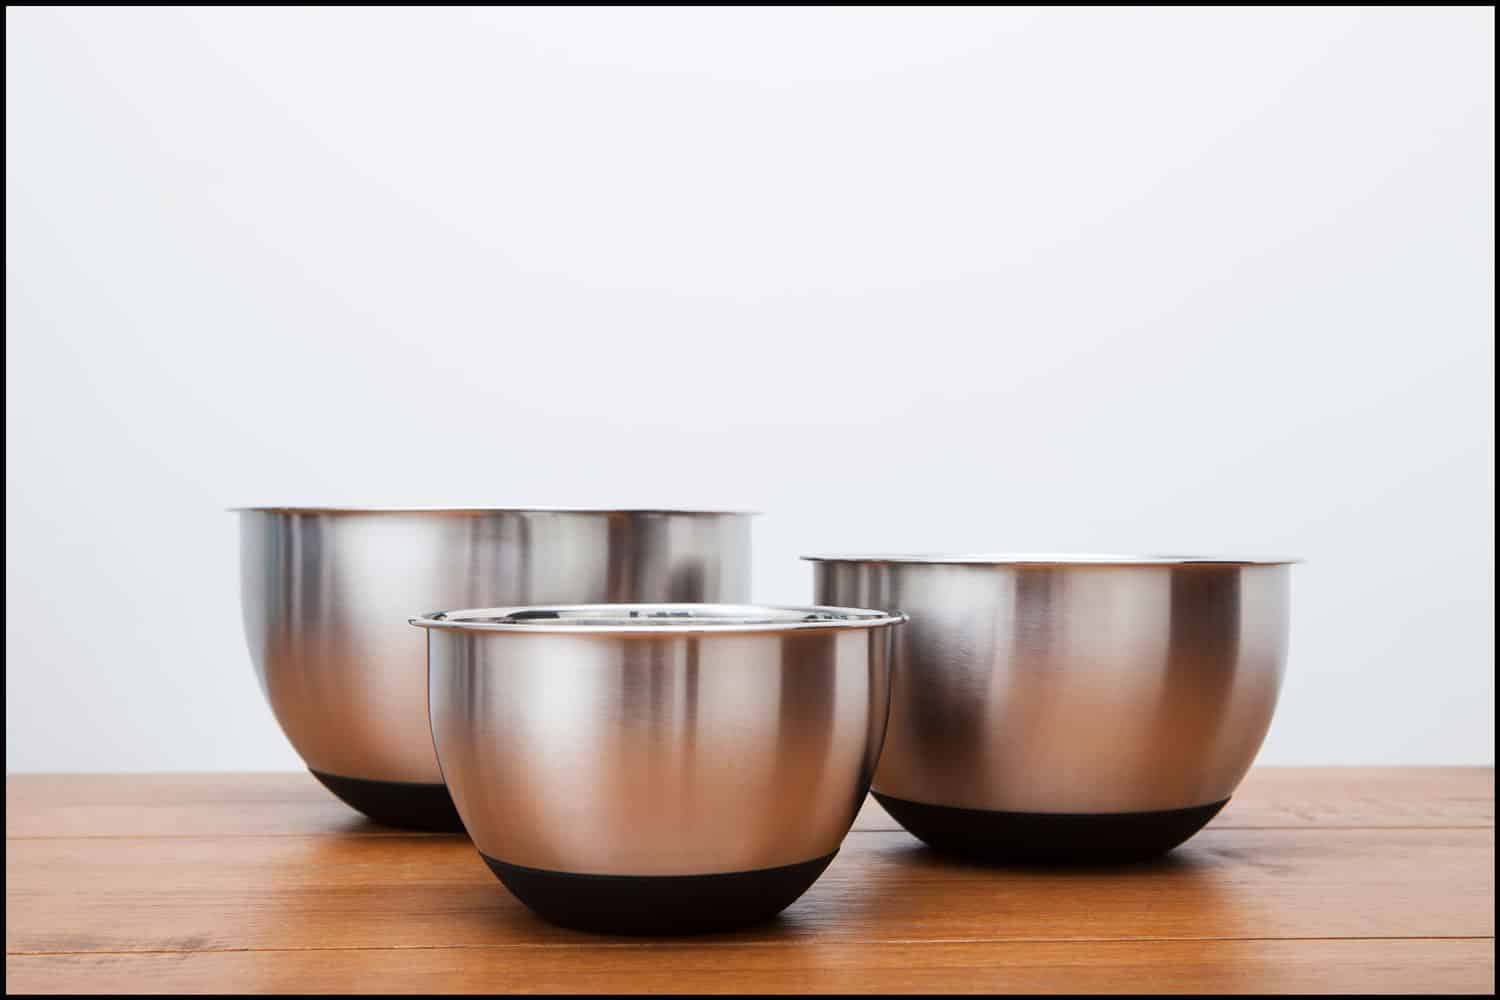 Three different sized silver coloured kitchen mixing bowls, When Should You Not Use Metal Mixing Bowls?